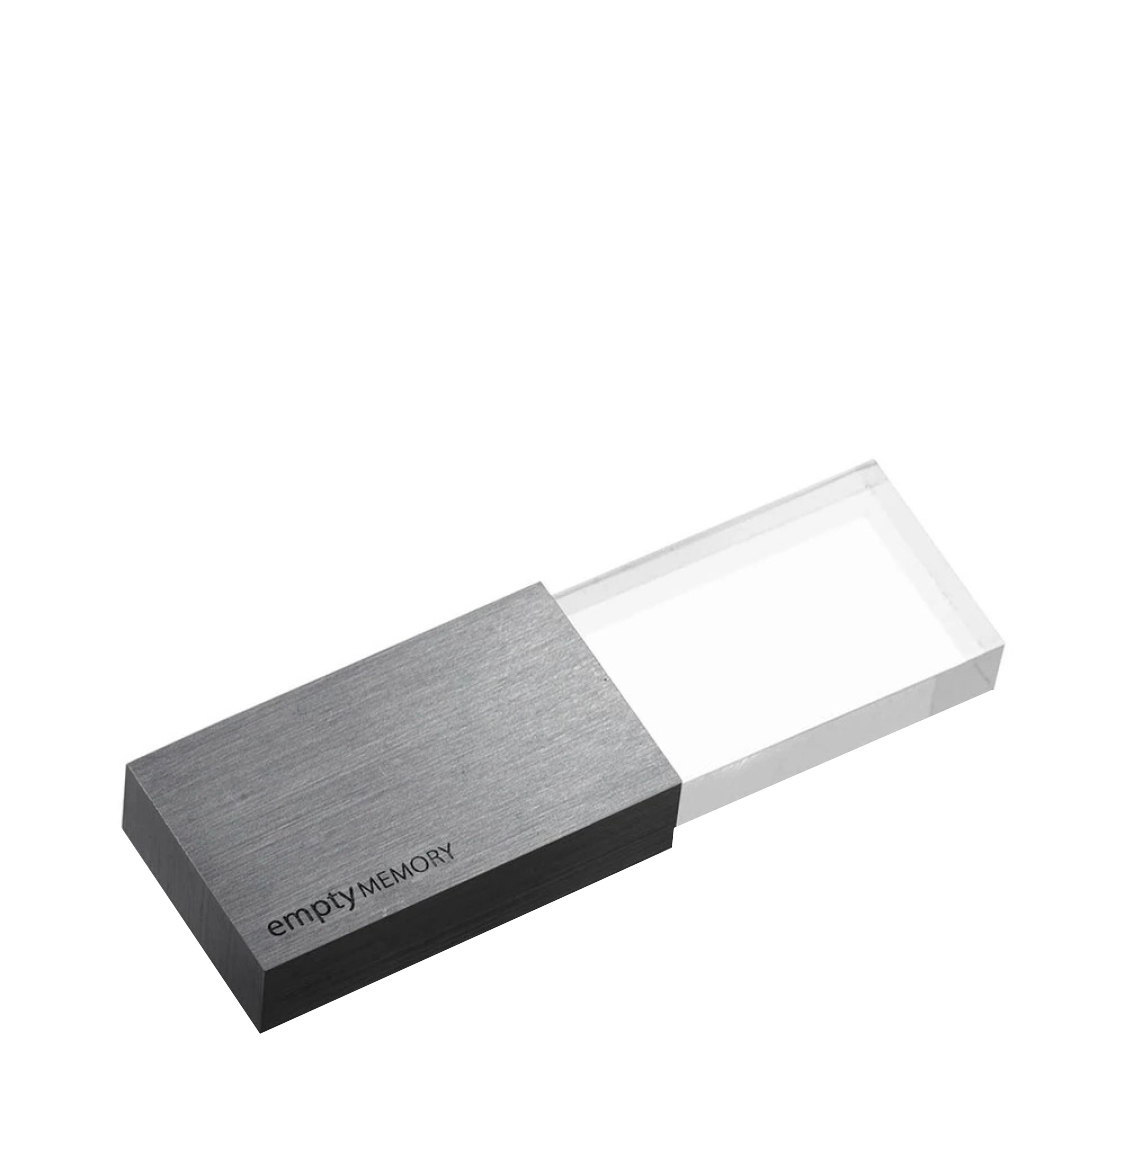 Beyond Object USB Memory Transparency Gun Metal